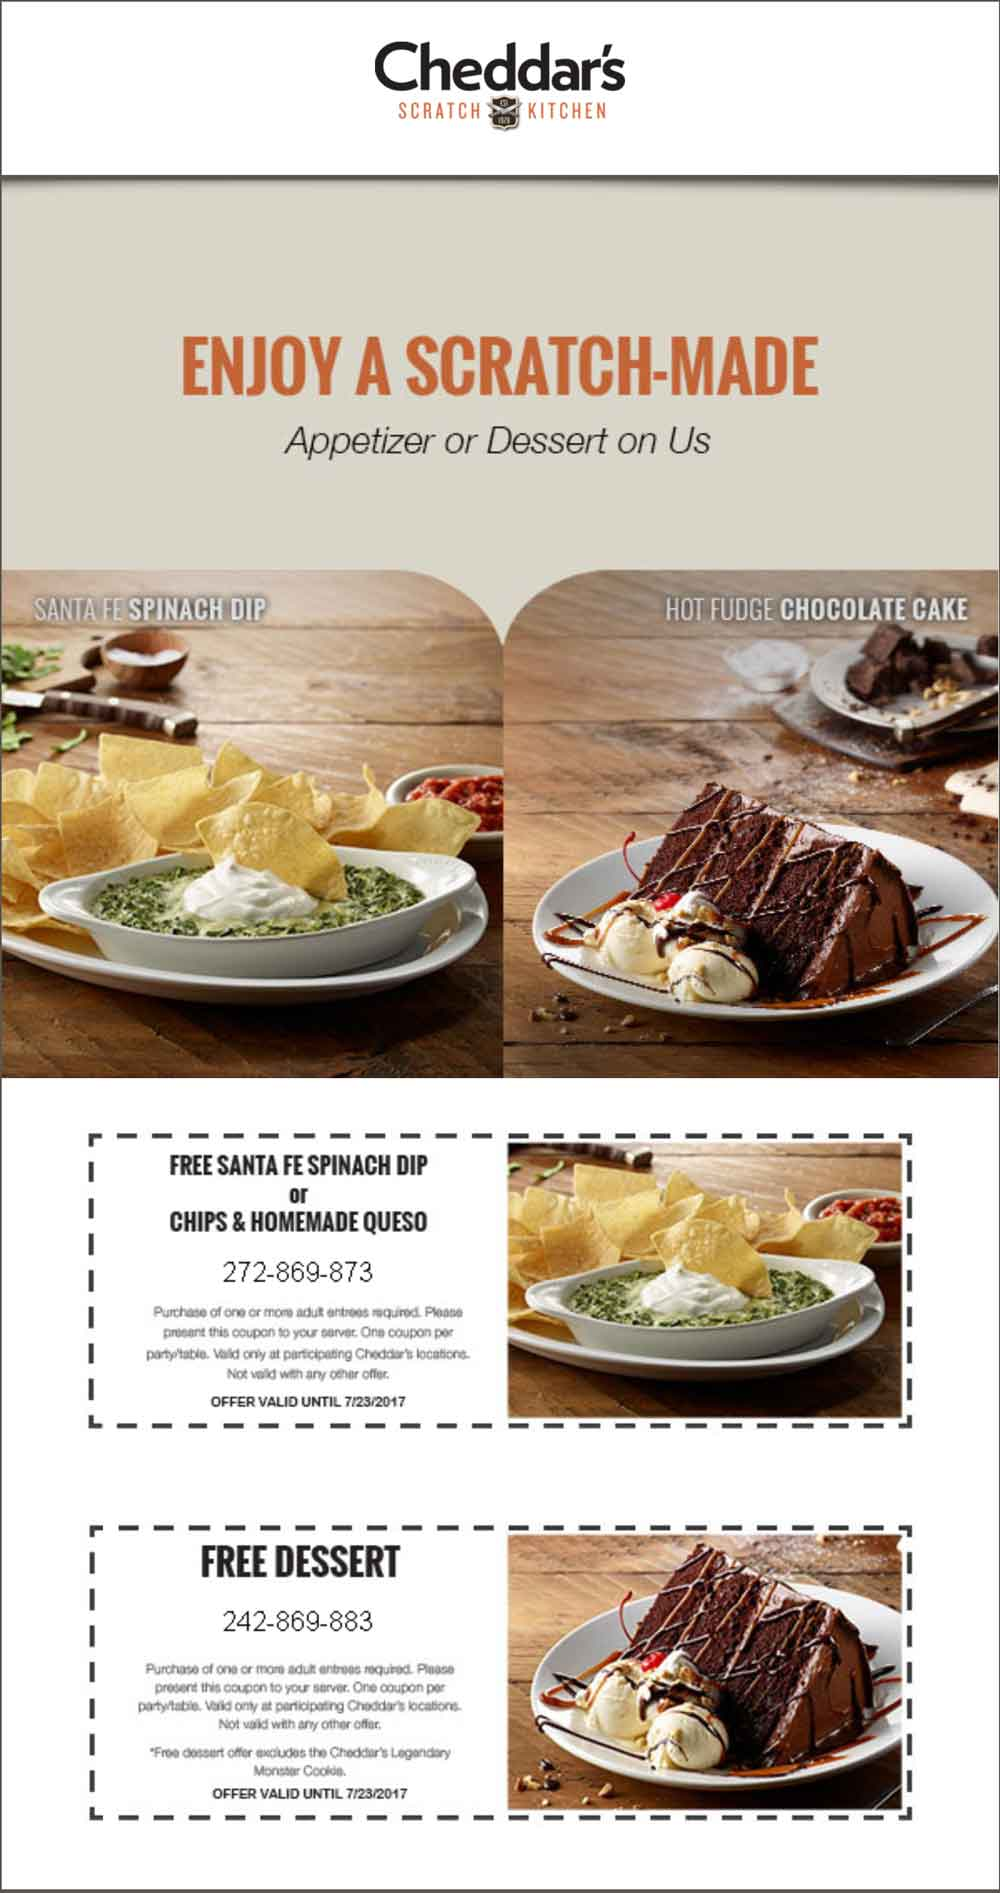 CheddarsScratchKitchen.com Promo Coupon Free spinach dip or dessert at Cheddars Scratch Kitchen